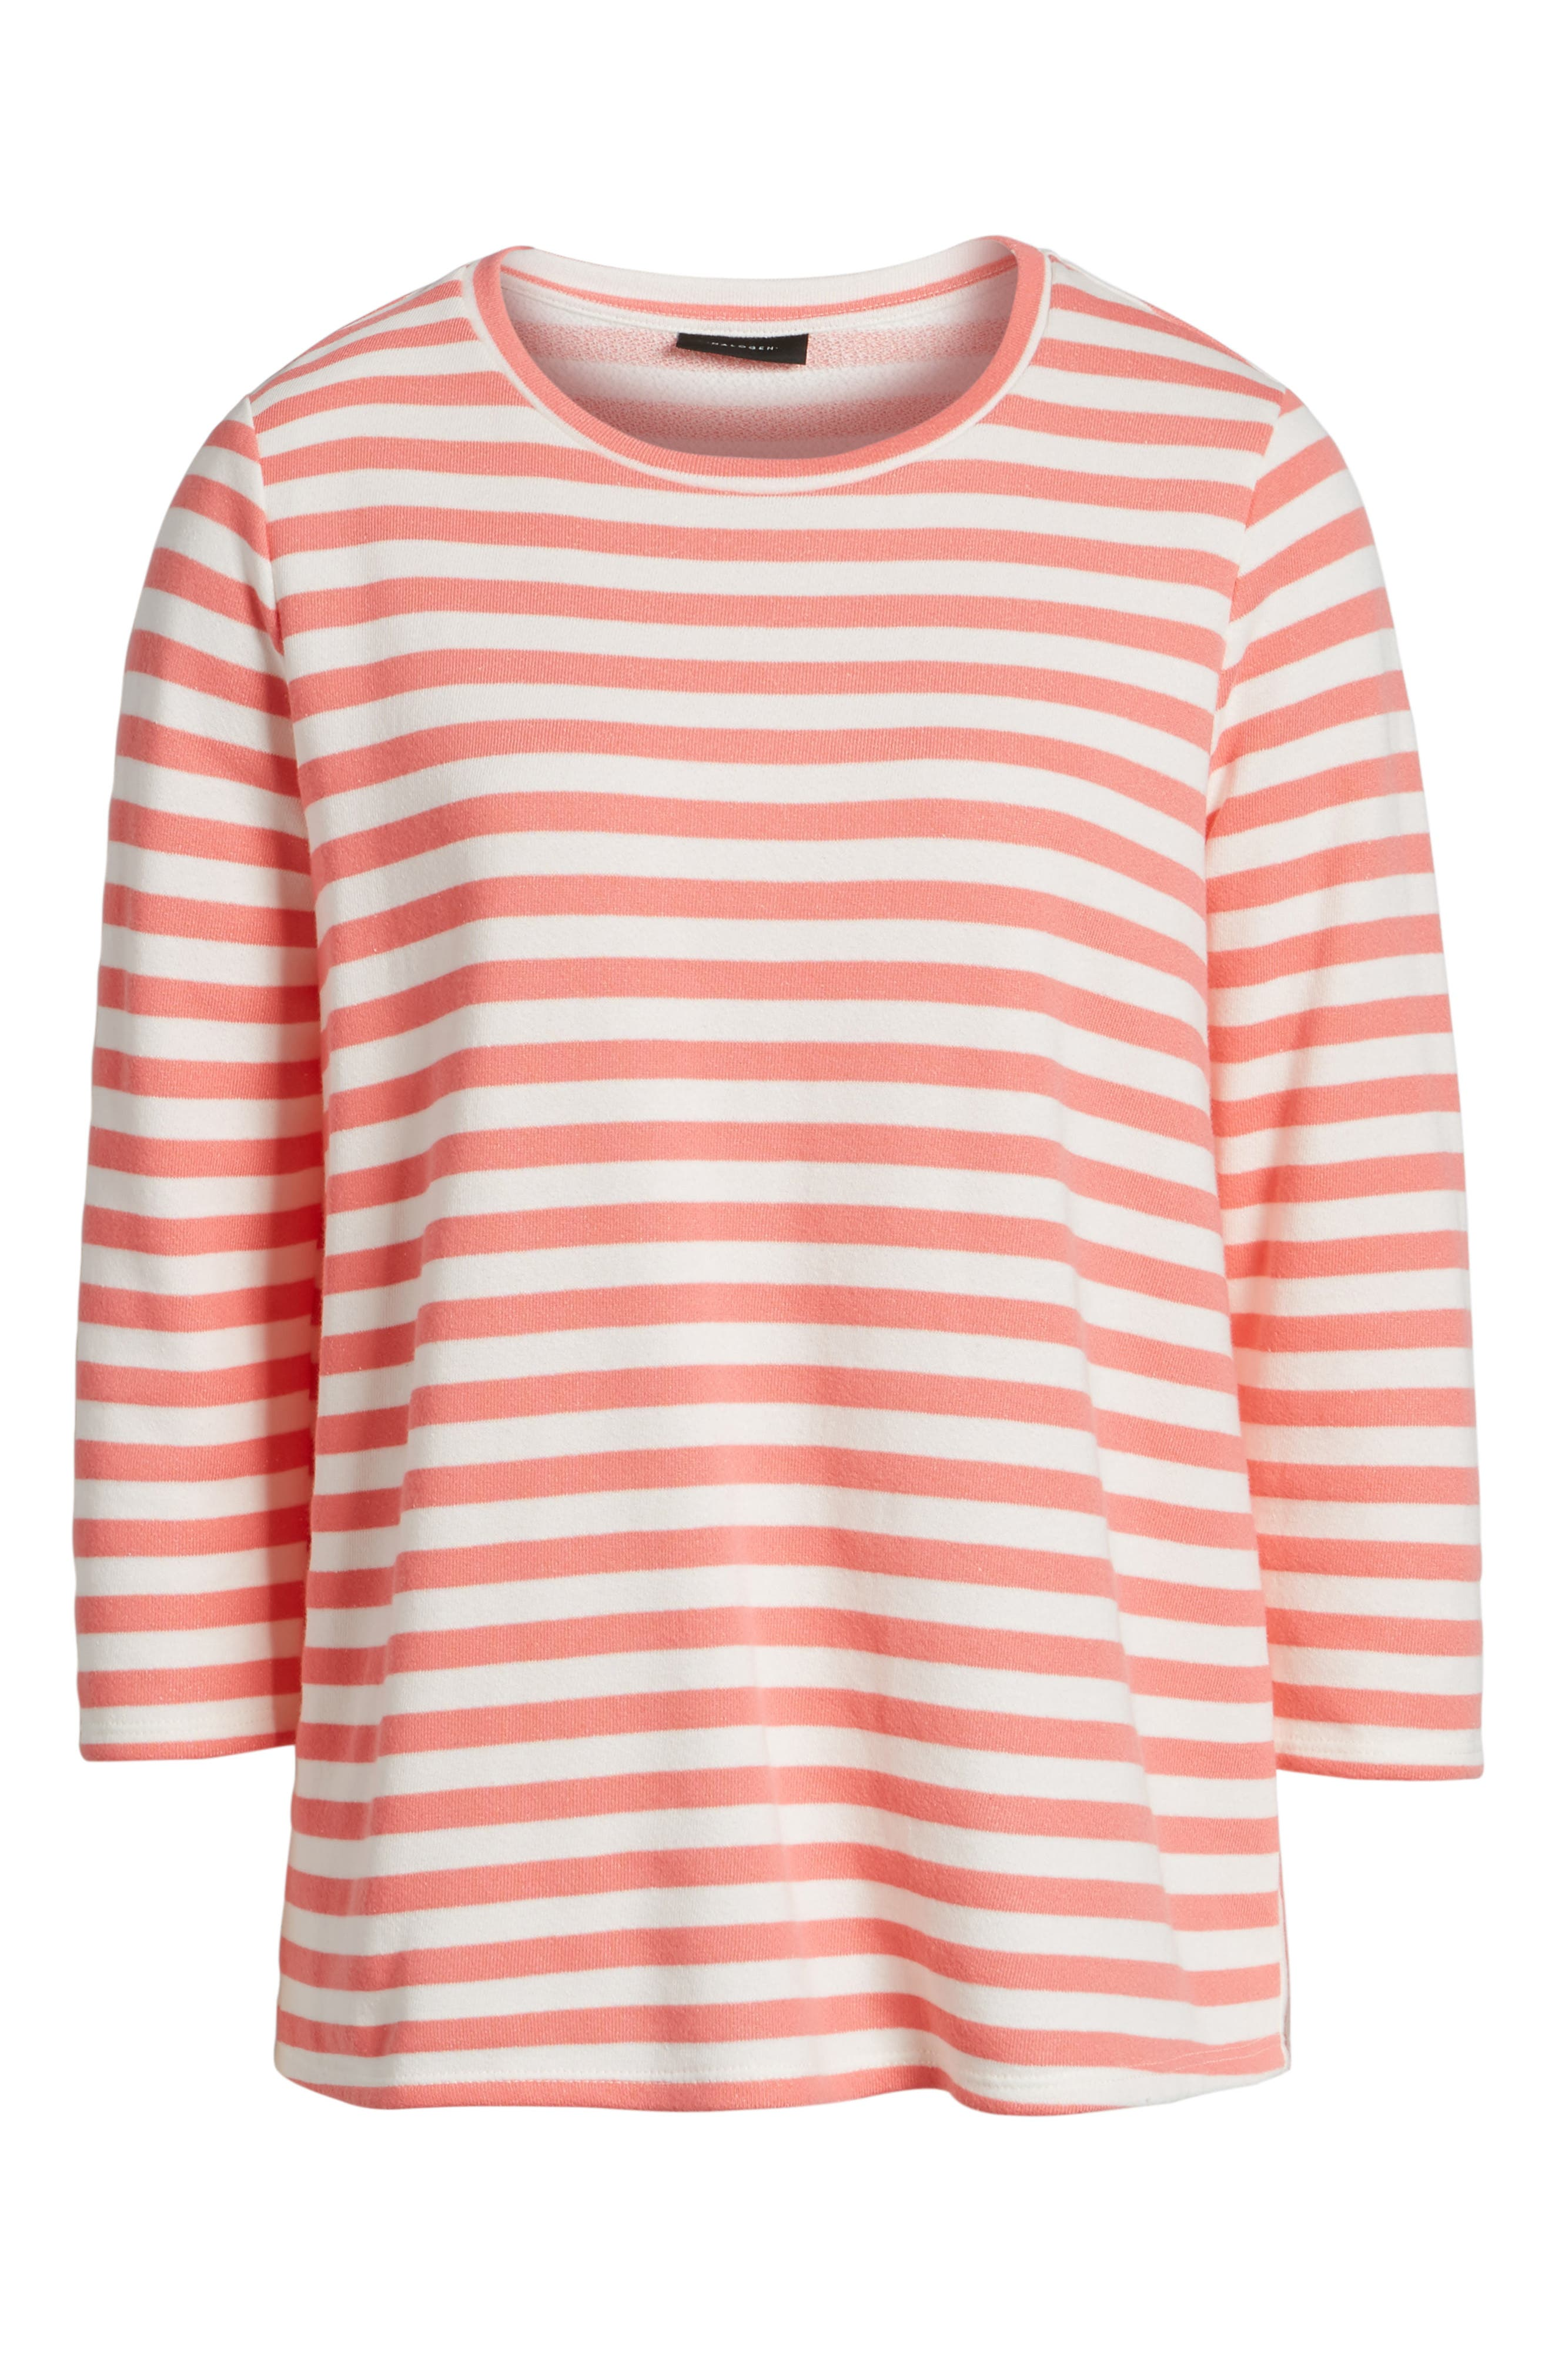 Halogen High/Low Cross Back Sweatshirt,                             Alternate thumbnail 6, color,                             Coral Sugar- White Stripe